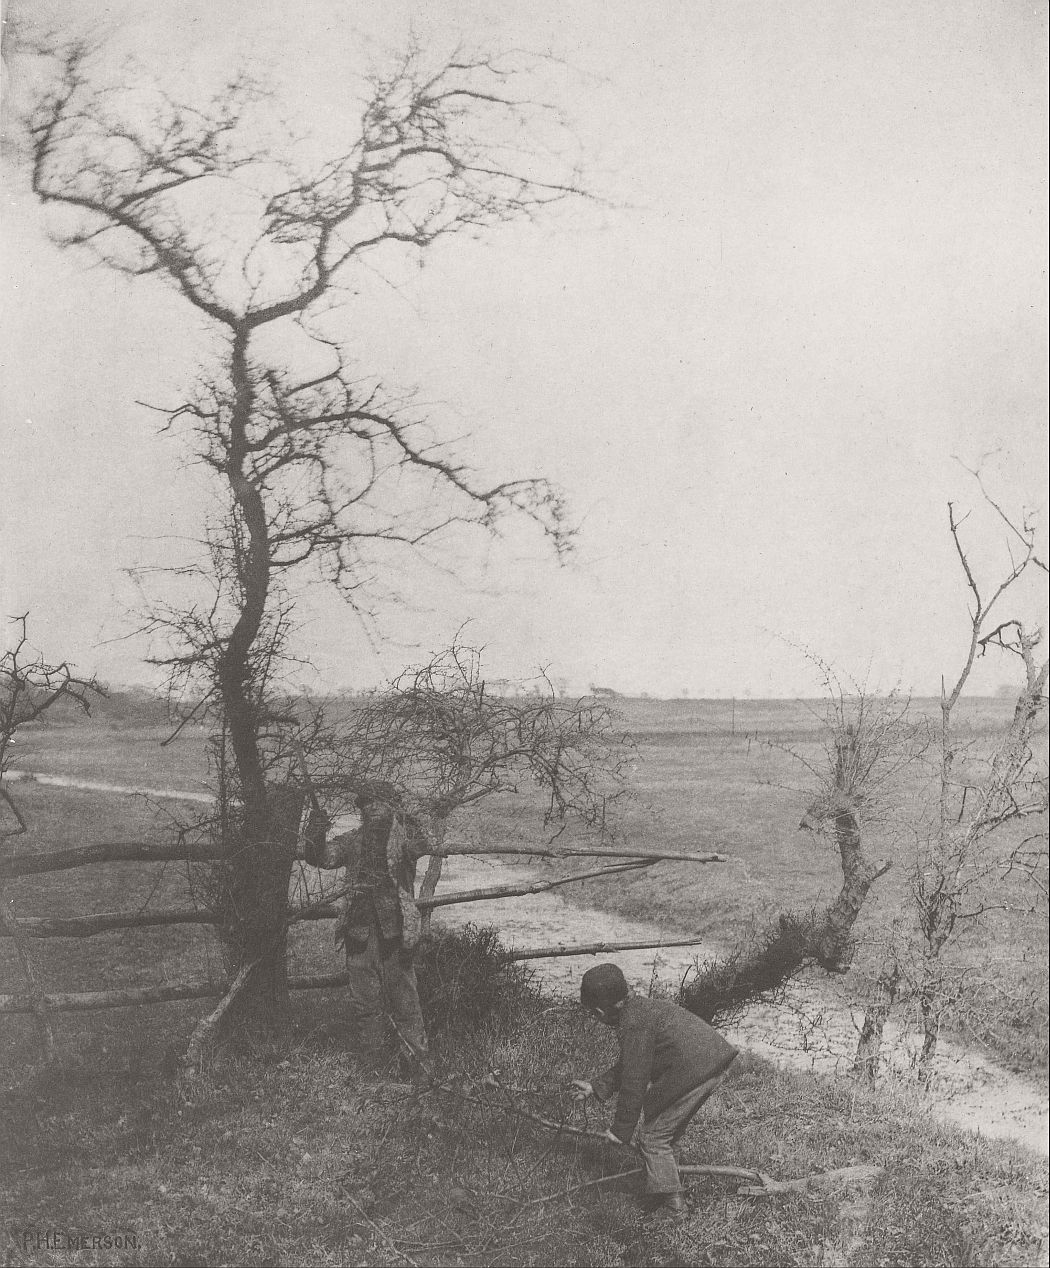 pictorial-rural-life-photographer-peter-henry-emerson-17